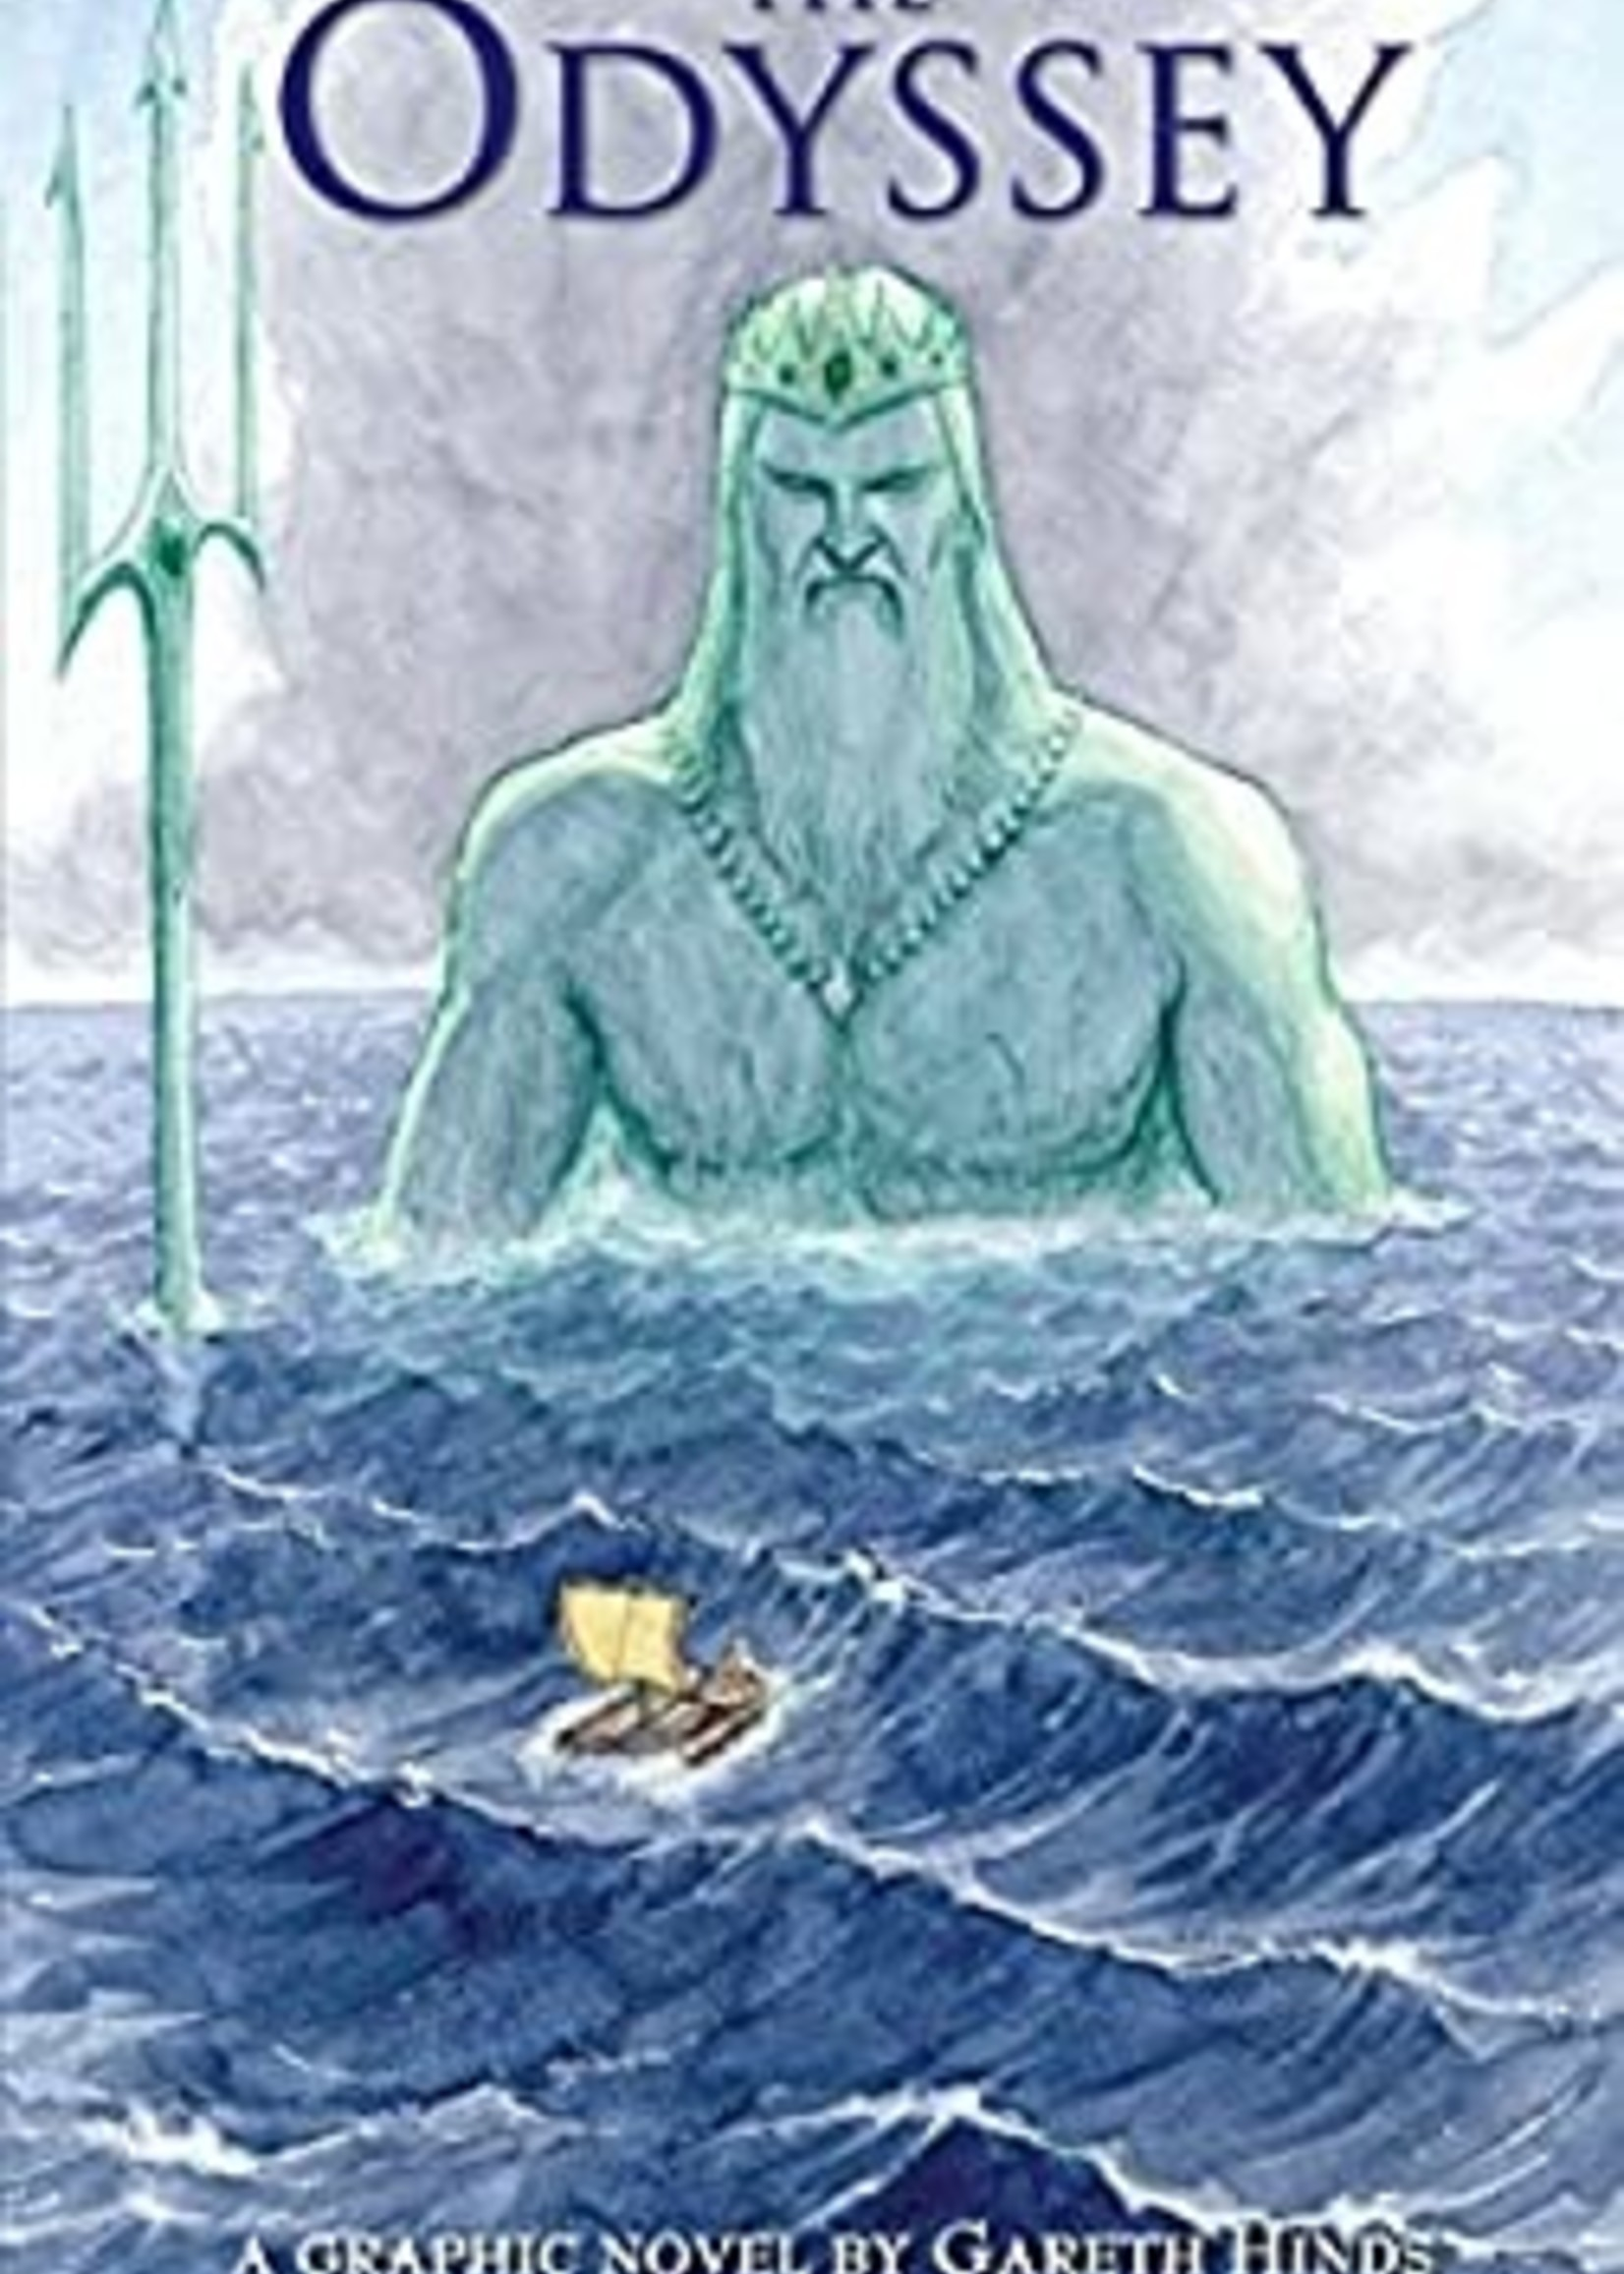 The Odyssey Graphic Novel - Paperback